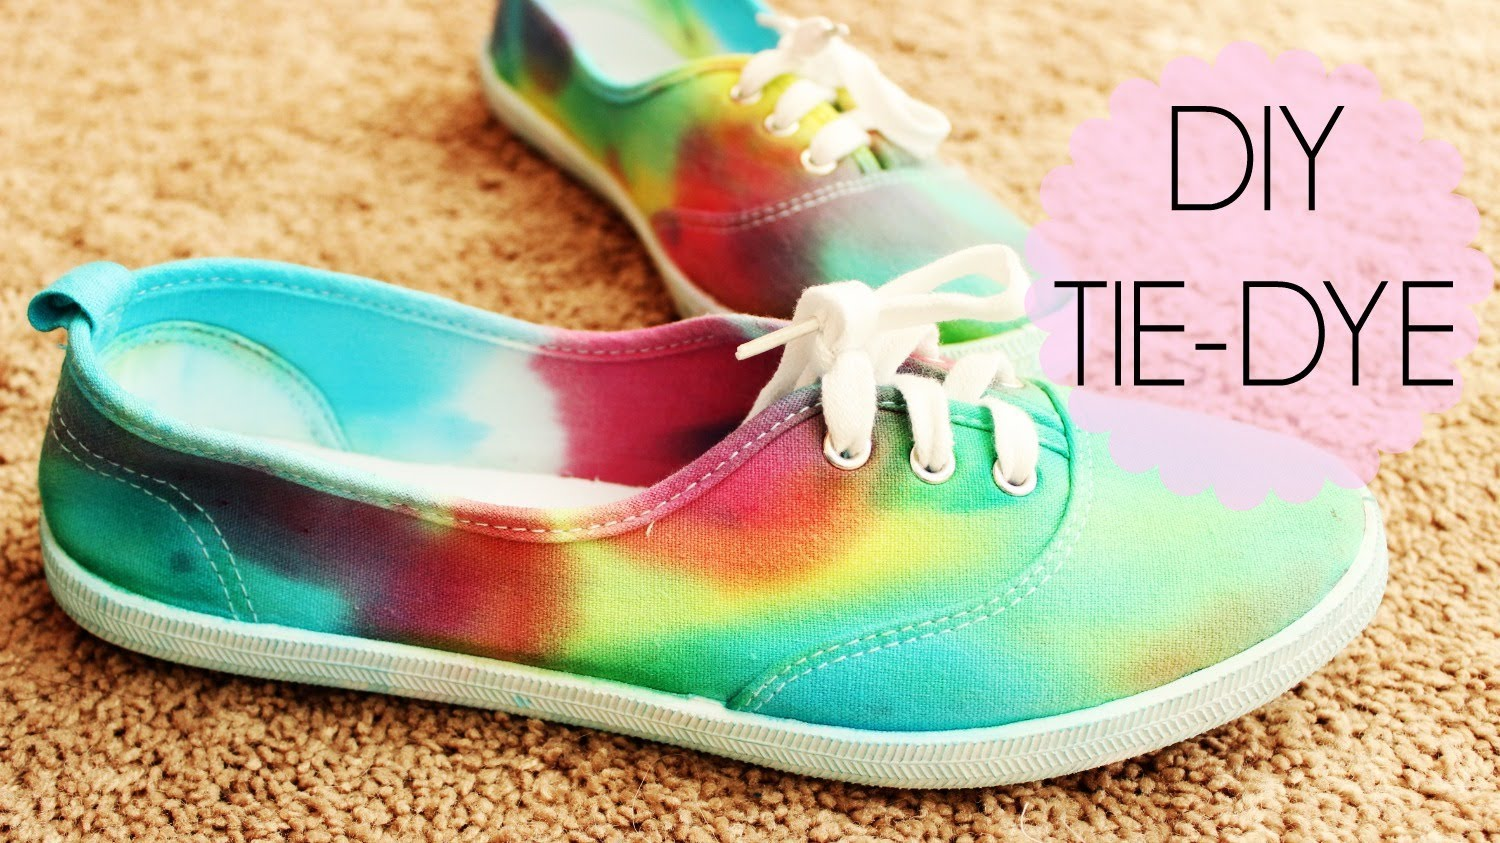 15 Different Things To Tie Dye